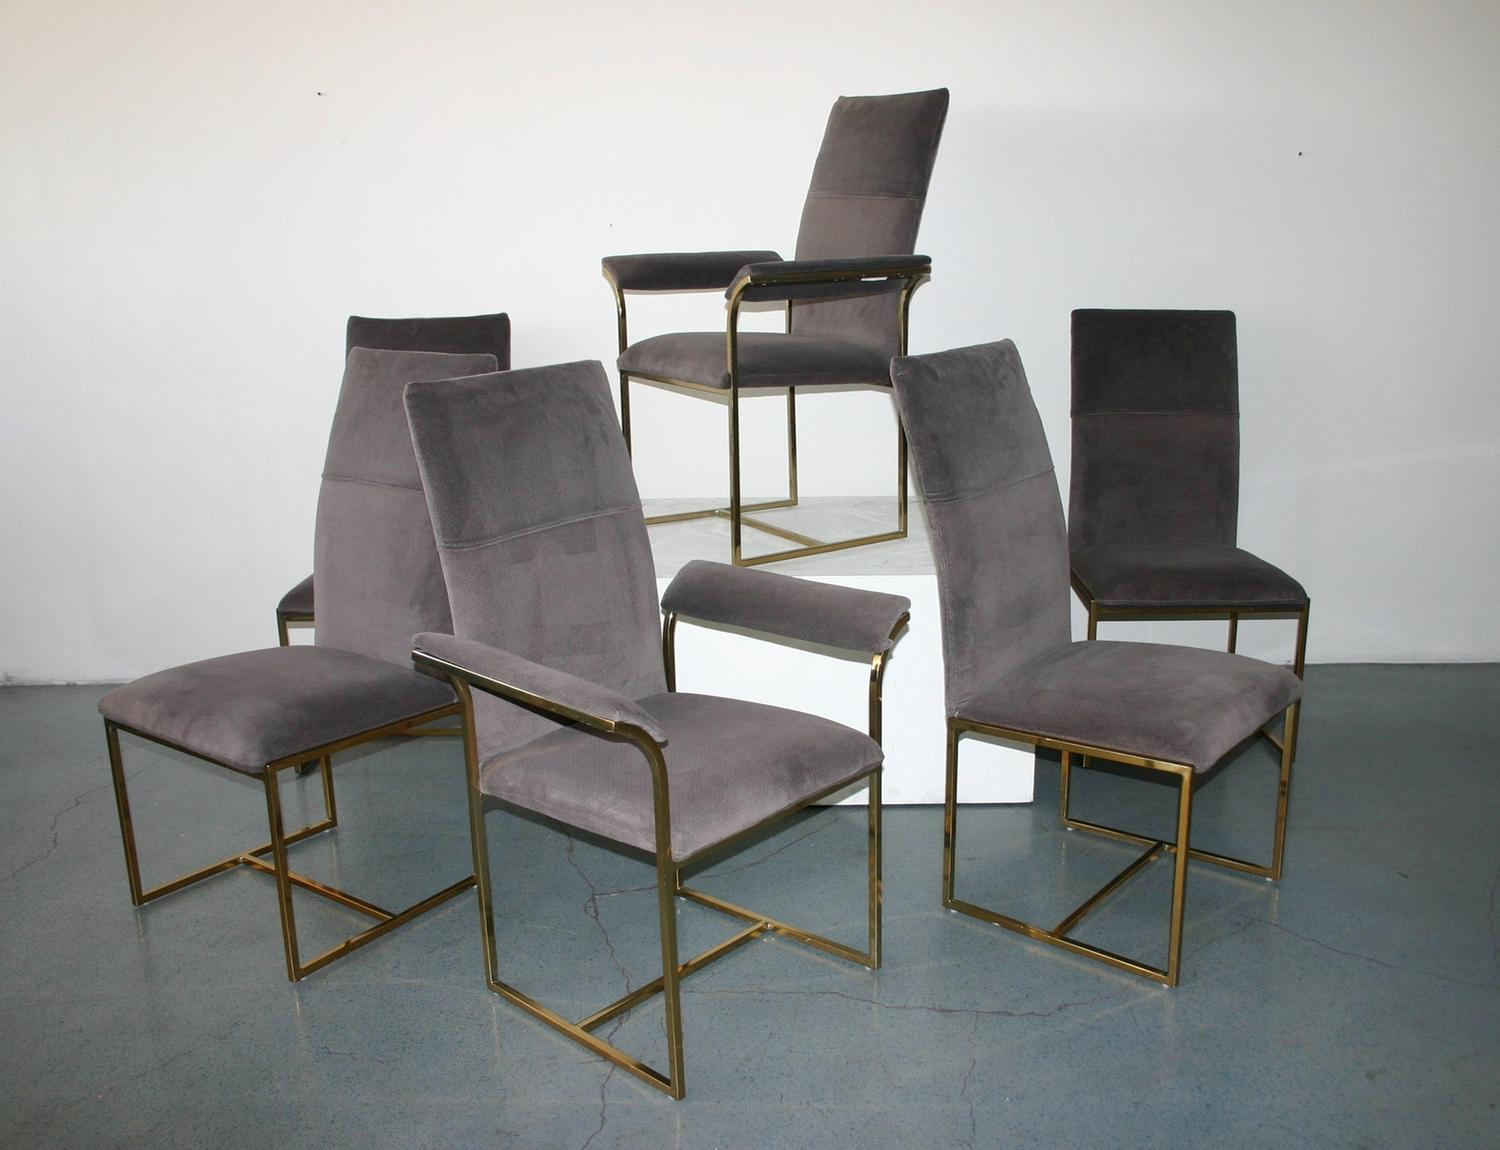 Incroyable Milo Baughman Dining Chairs, Set Of 6 C. 1950. Loading Zoom